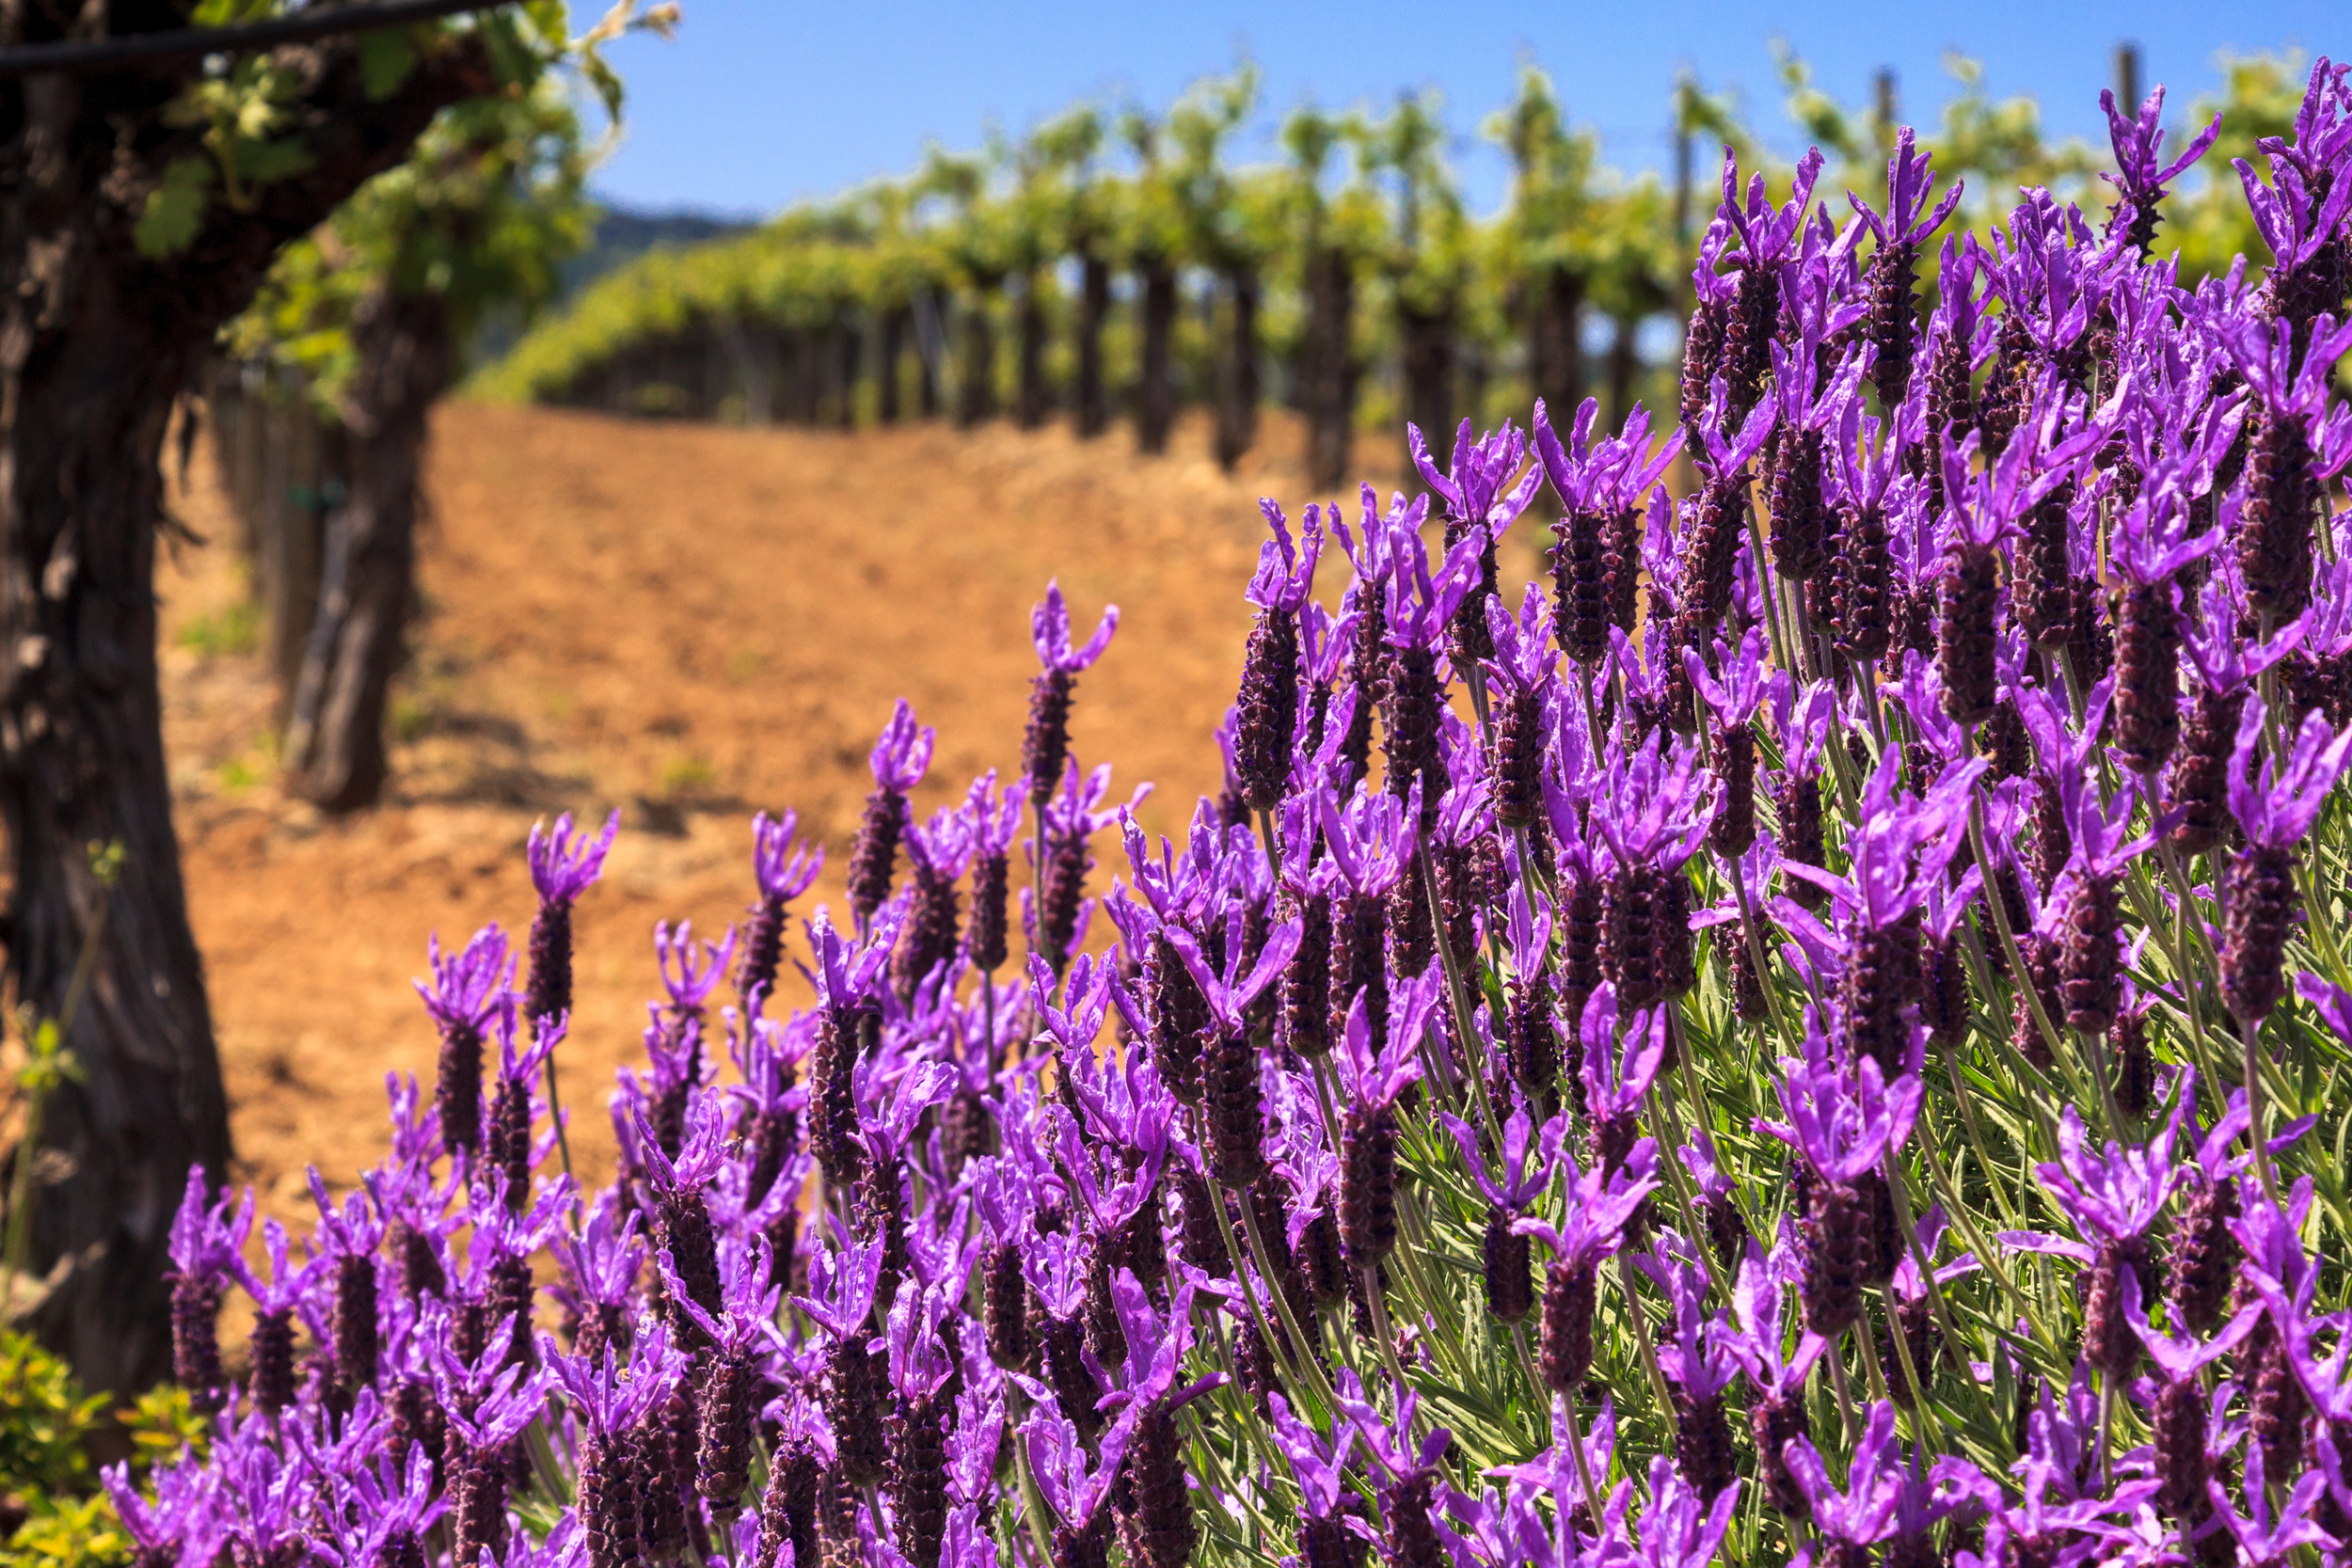 bigstock-Flowers-And-Vineyards-40590253.jpg